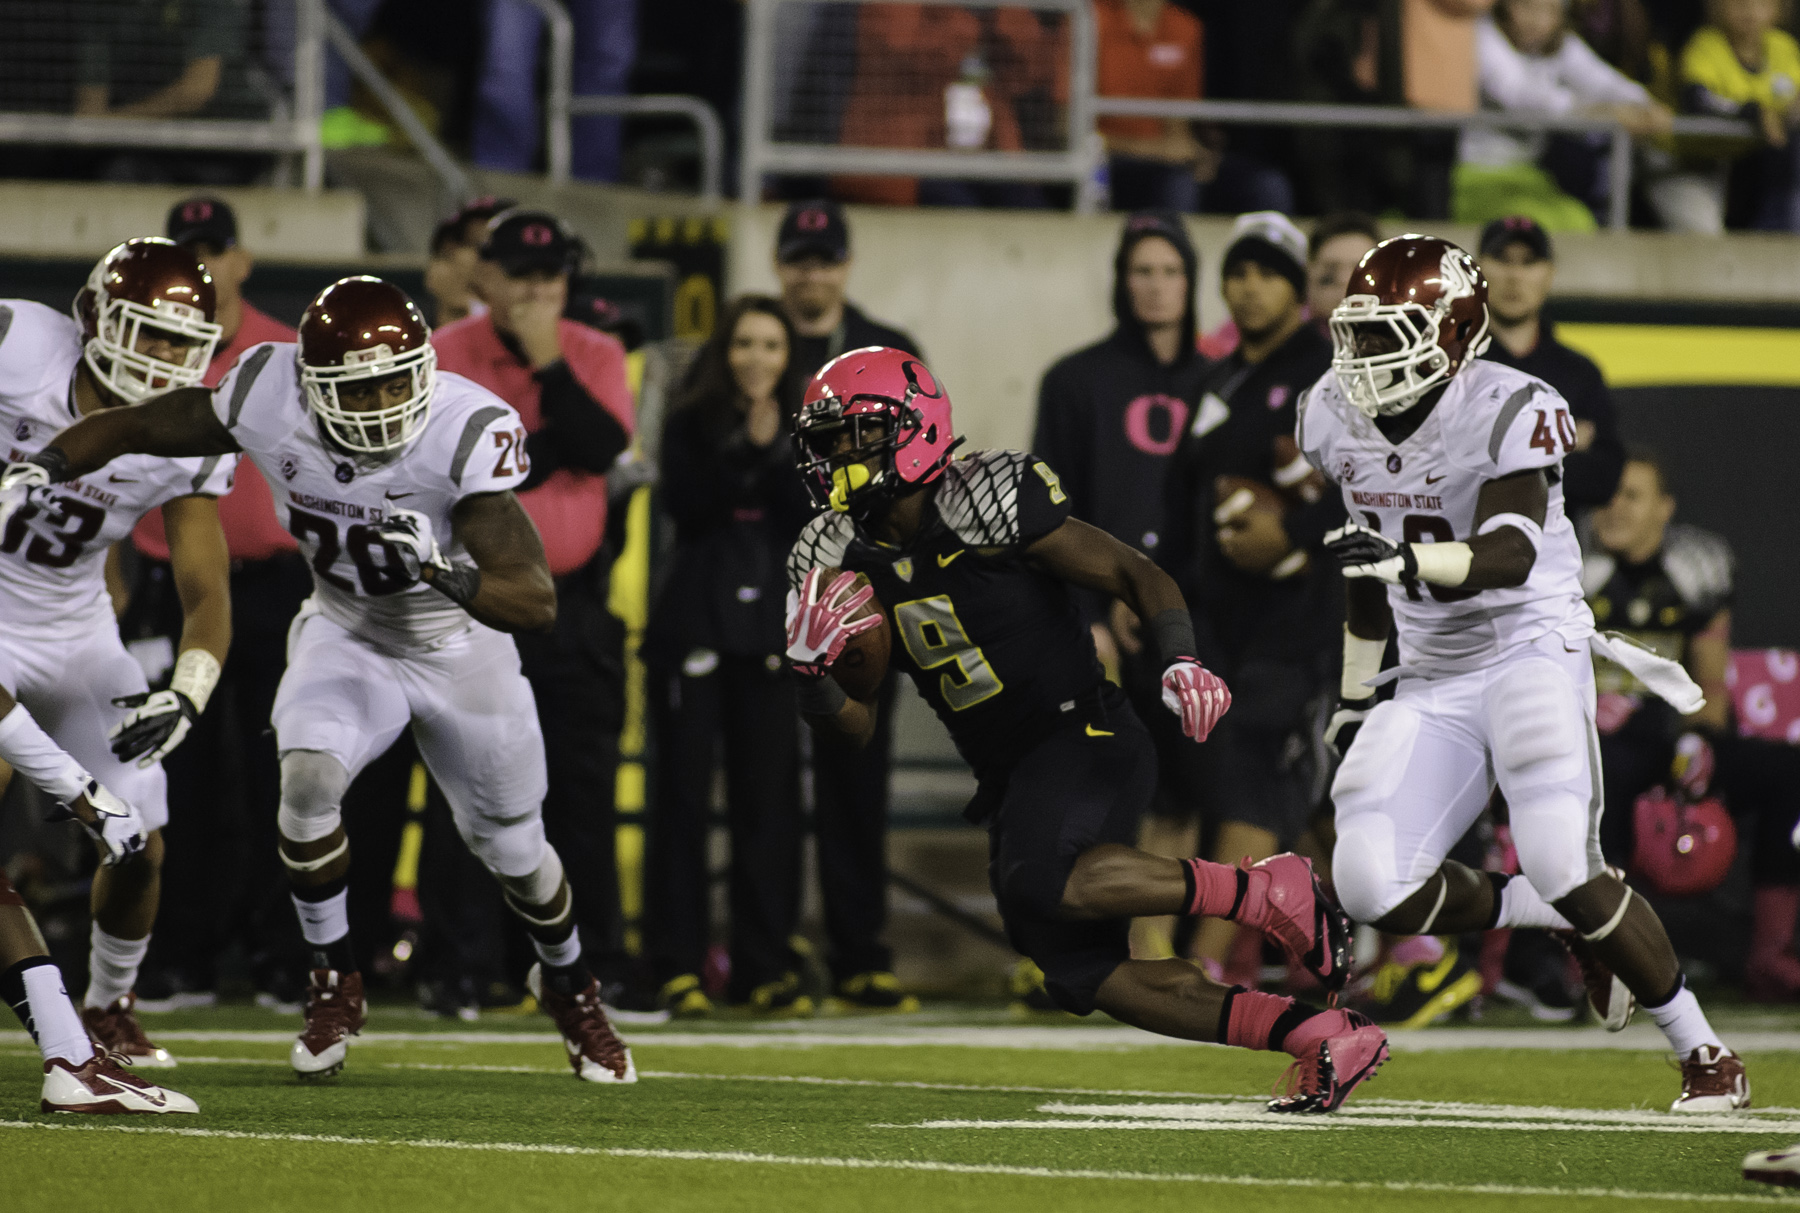 Byron Marshall 52 Washington State13CS